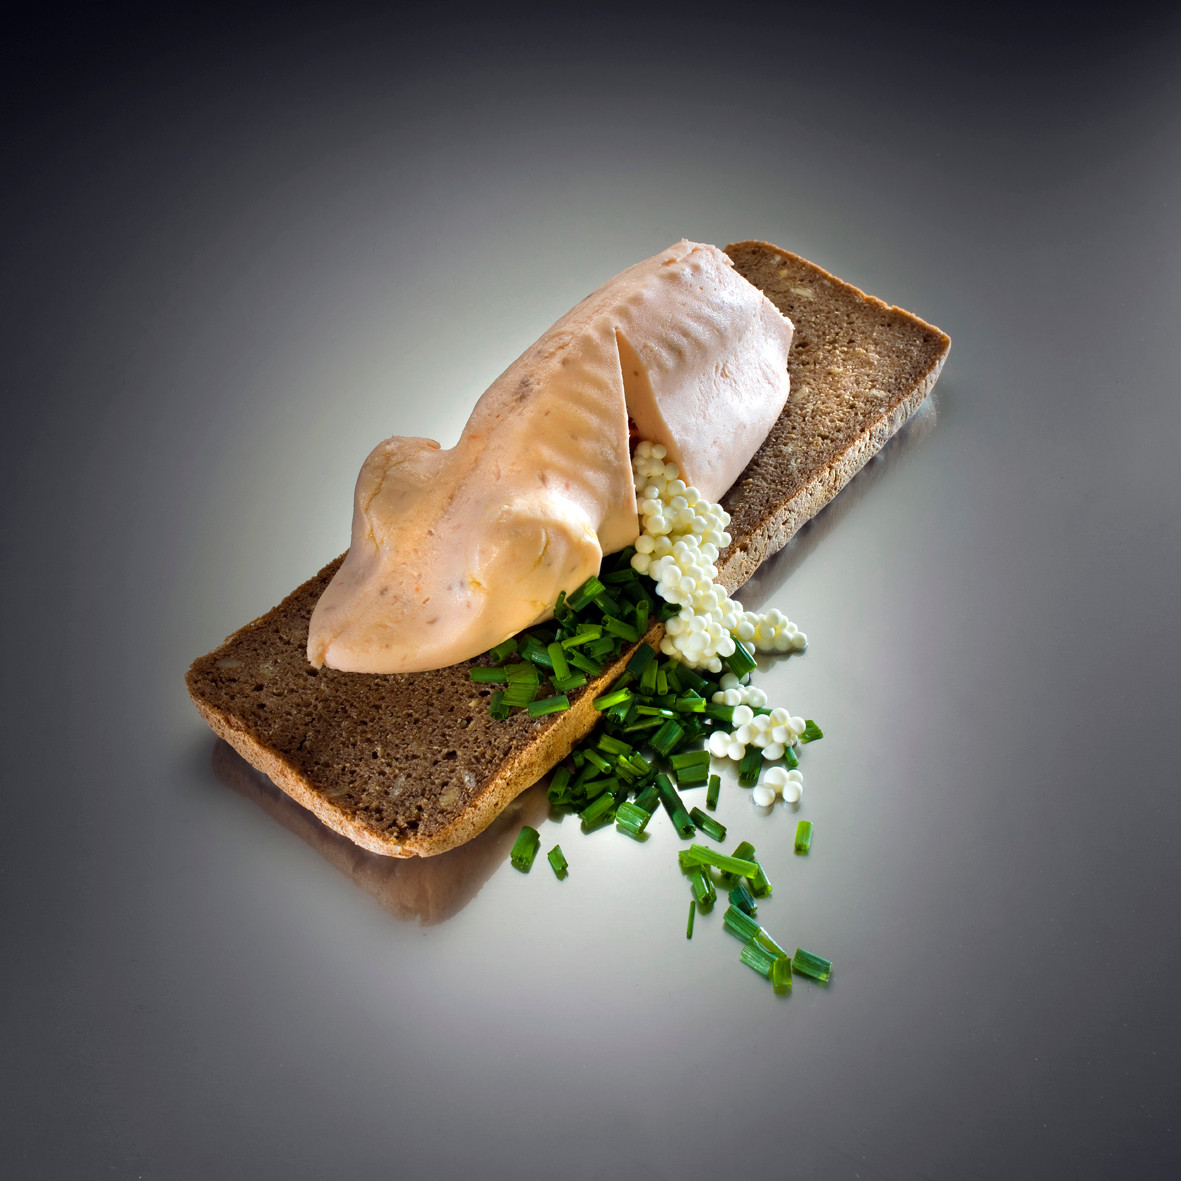 Gefilte fish -Main dishes; Salmon mousse filling with sour pearl, cream pearls and carrots pearl.  Salmon, pickled cucumber, carrots and Irit cream served on a bread